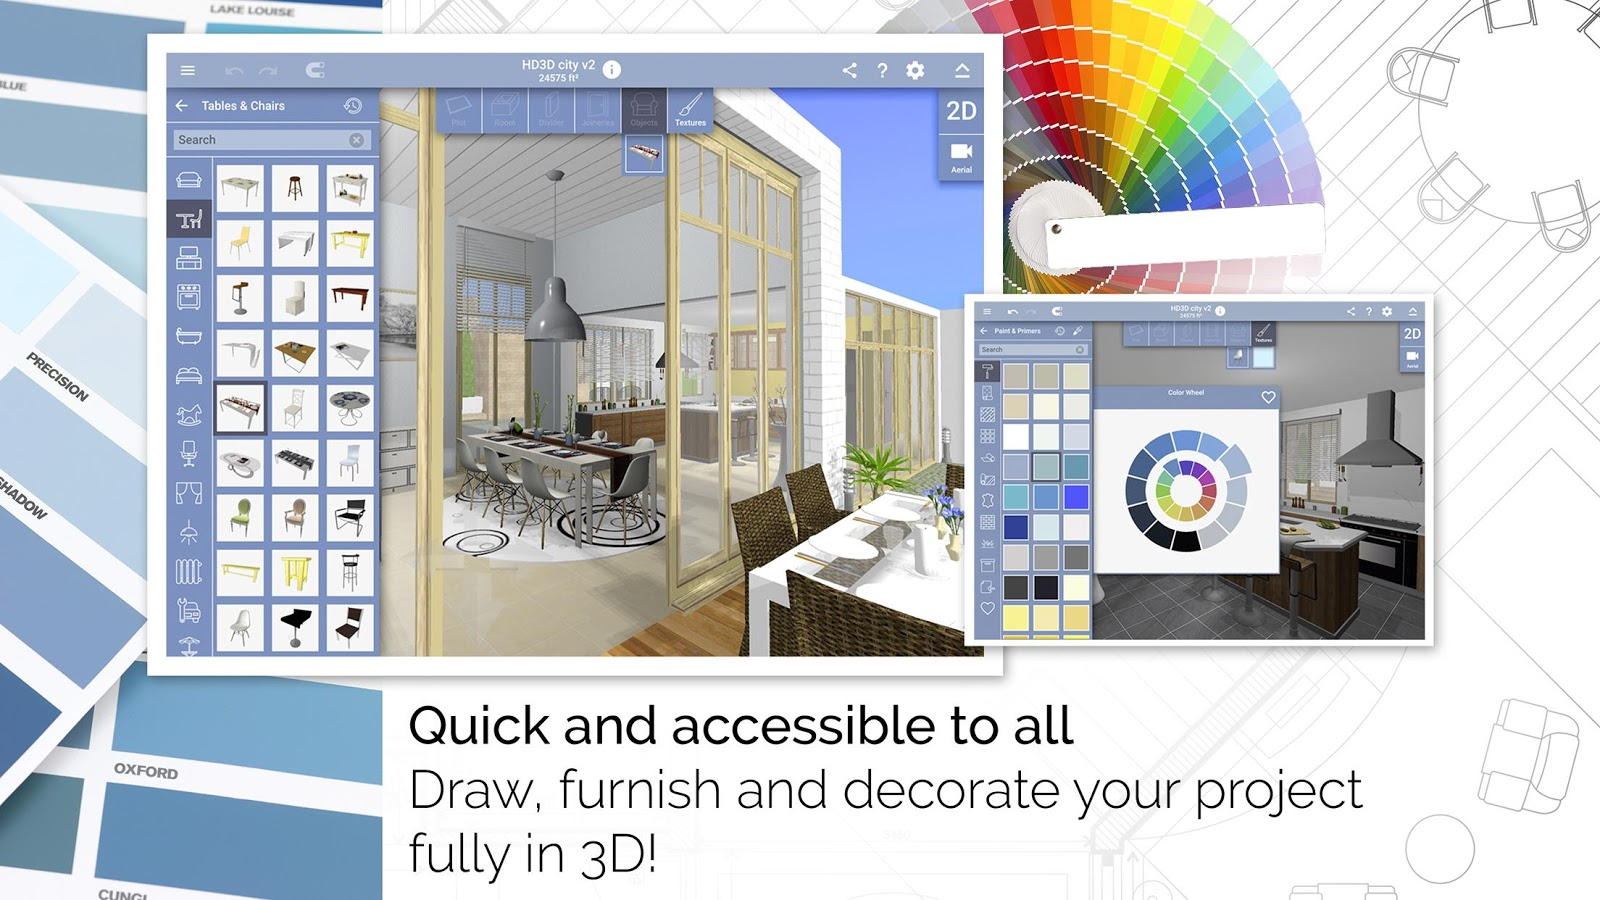 Home design 3d freemium android apps on google play 3d room design app